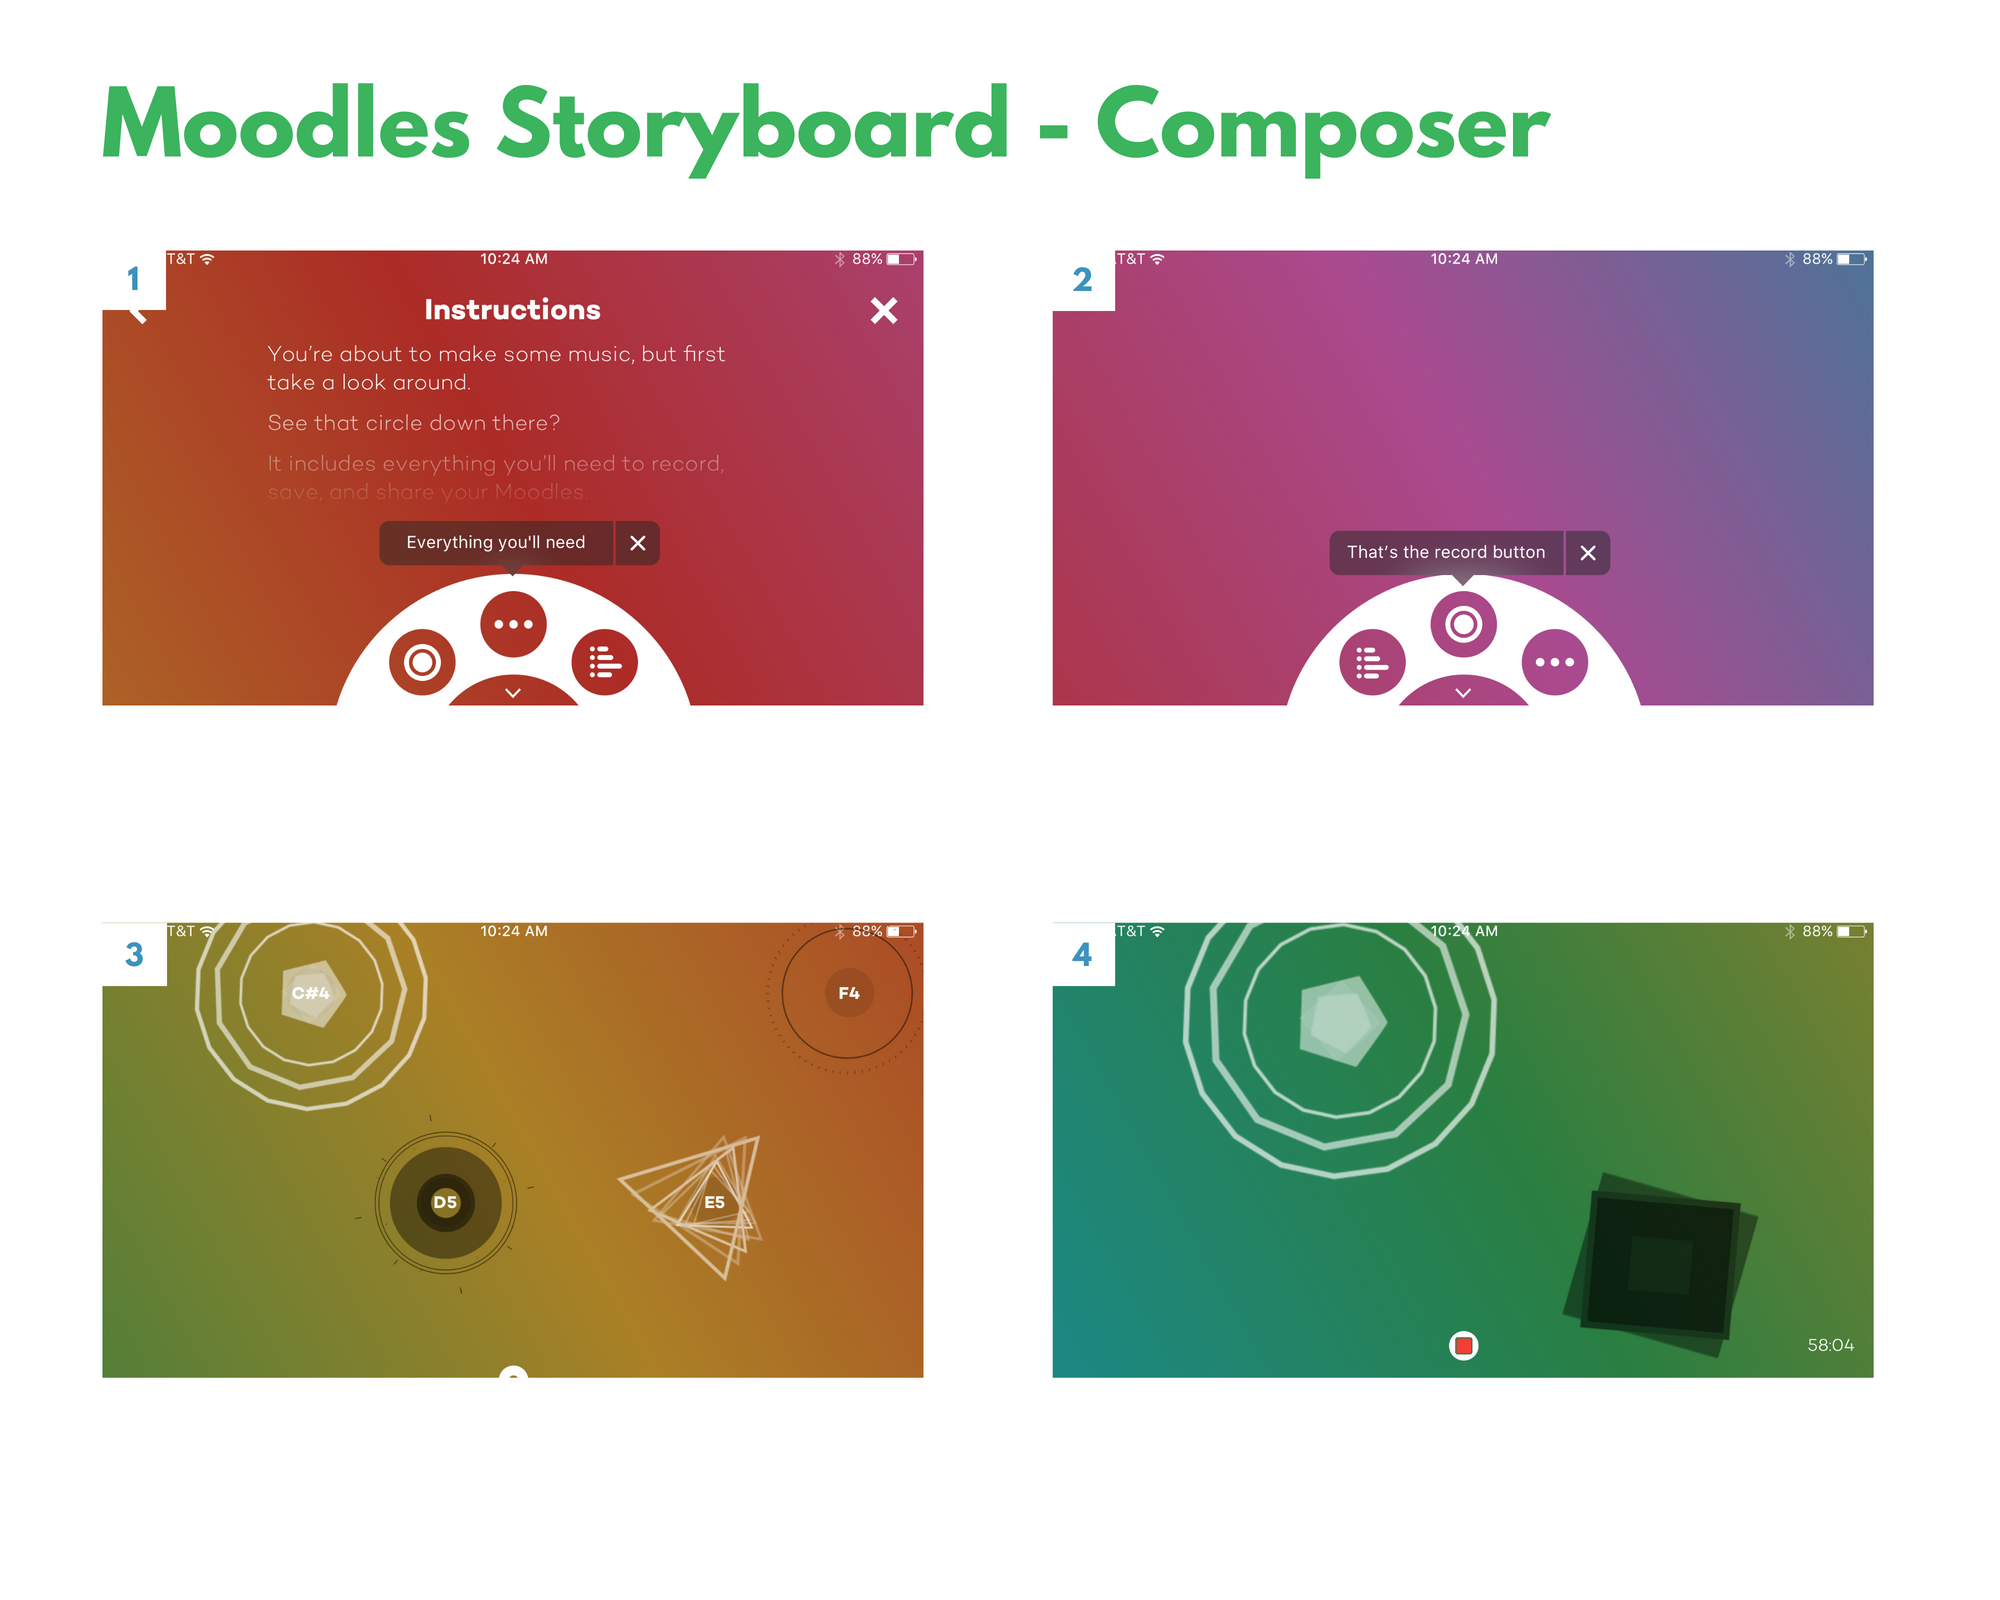 Moodles-Storyboard---Composer-01 by Grant Kindrick